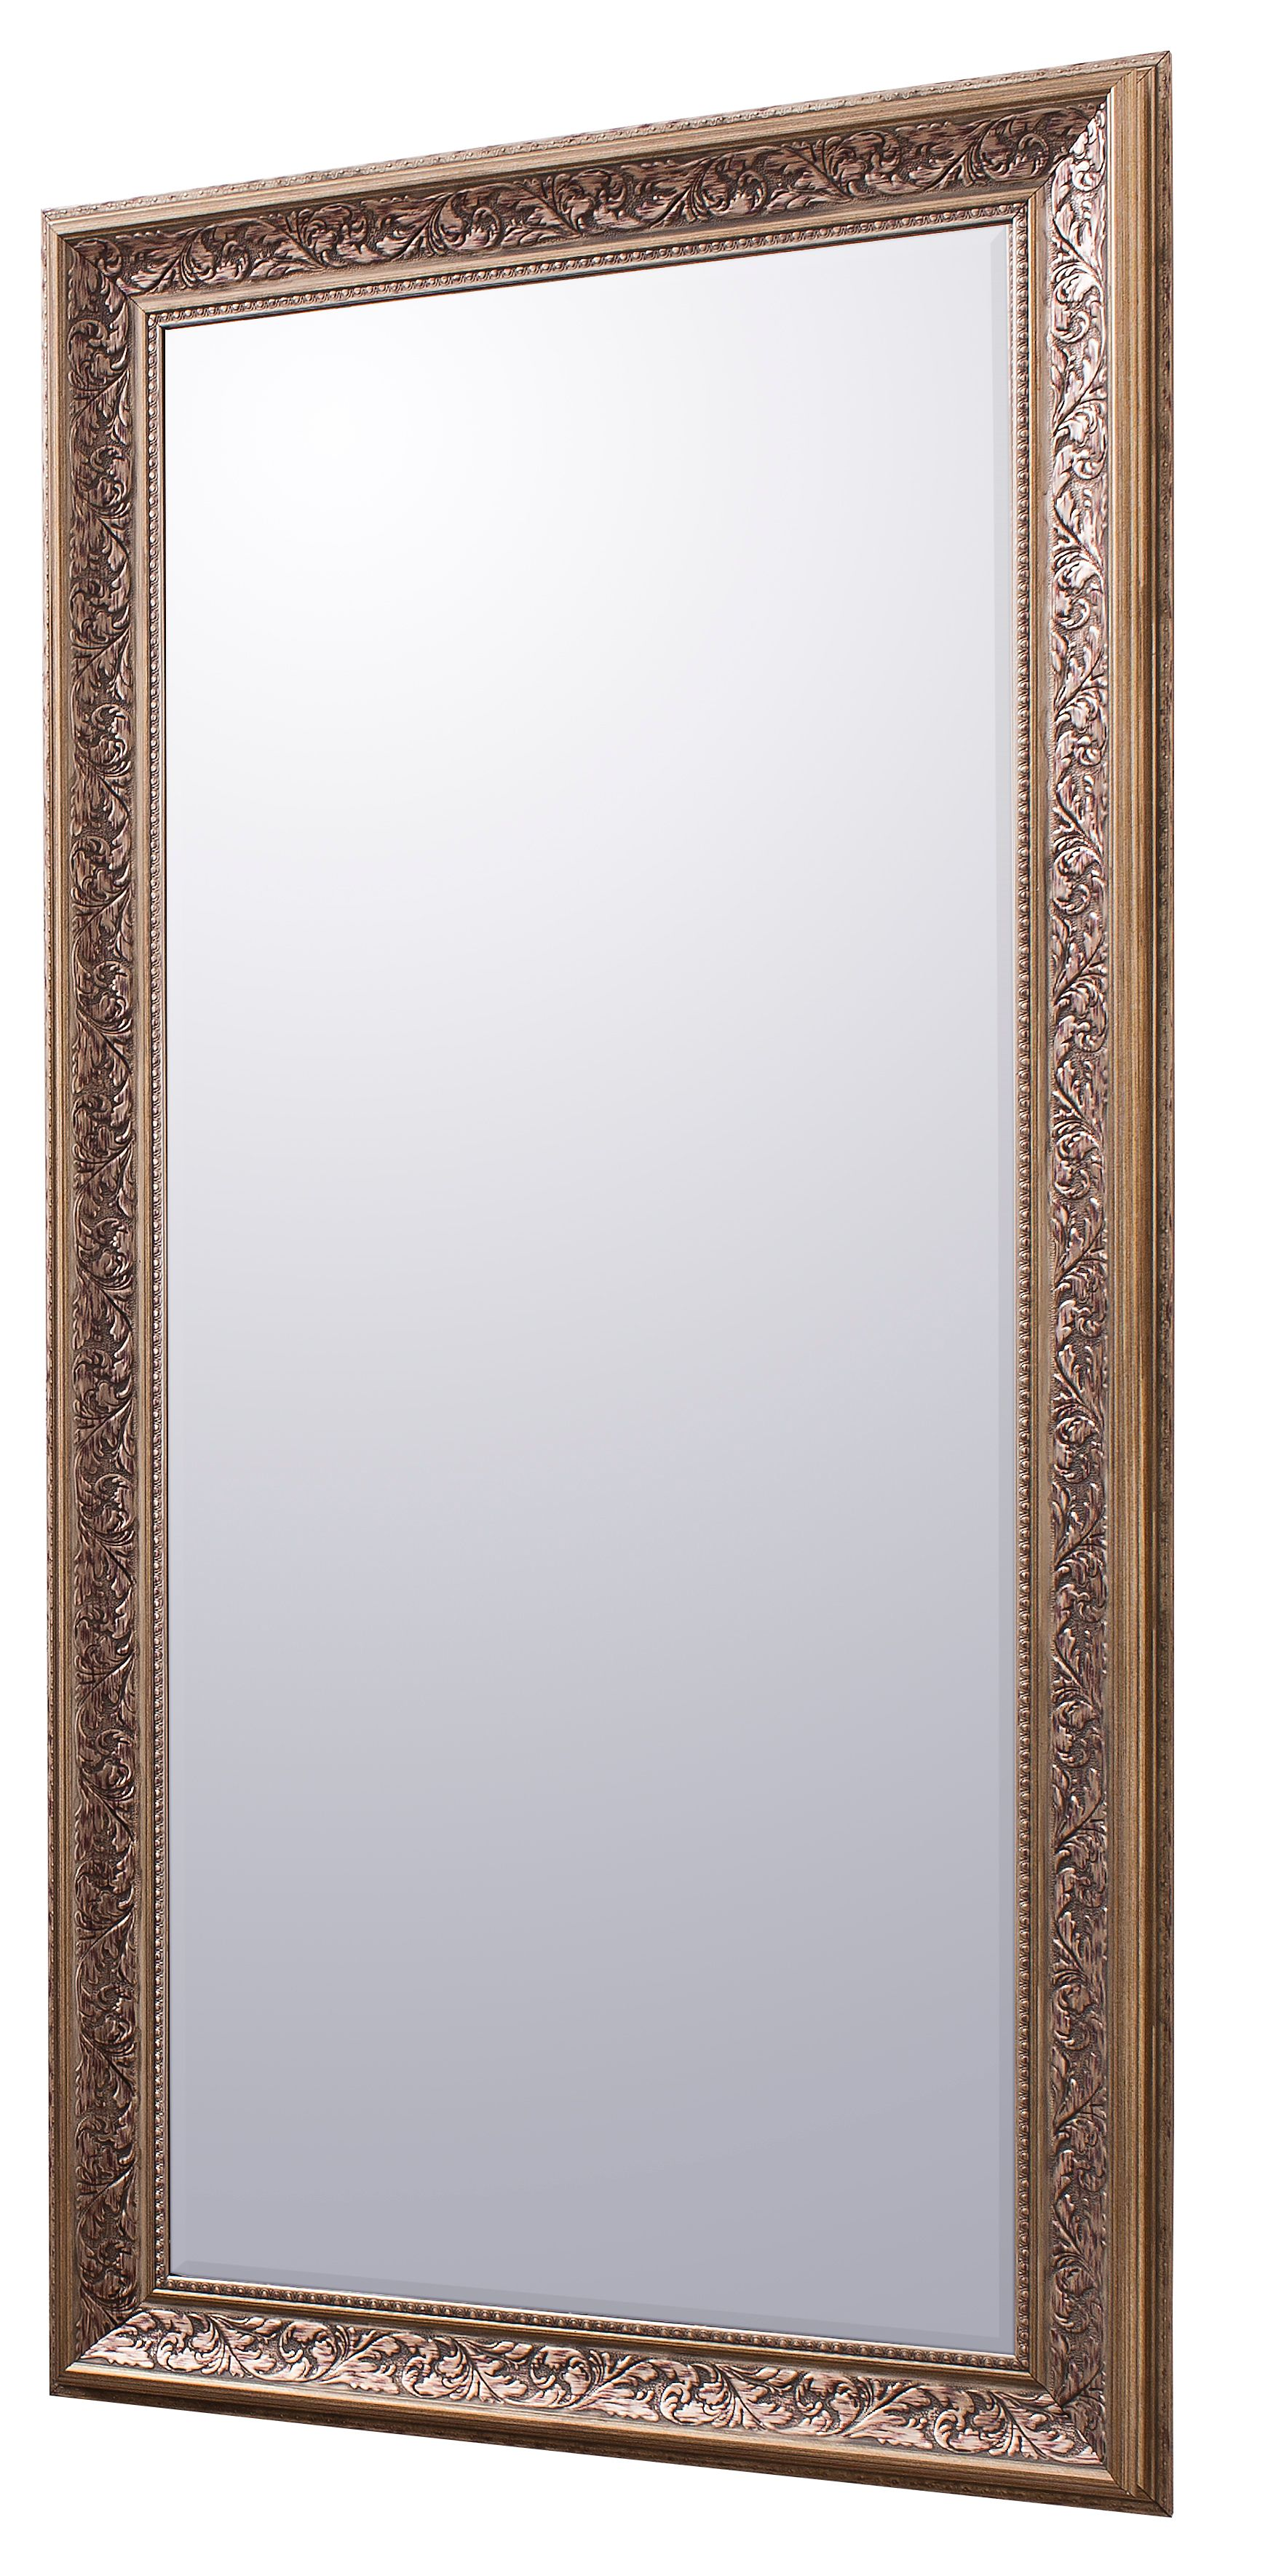 Milena Antique Silver Mirror 108 x 78cm